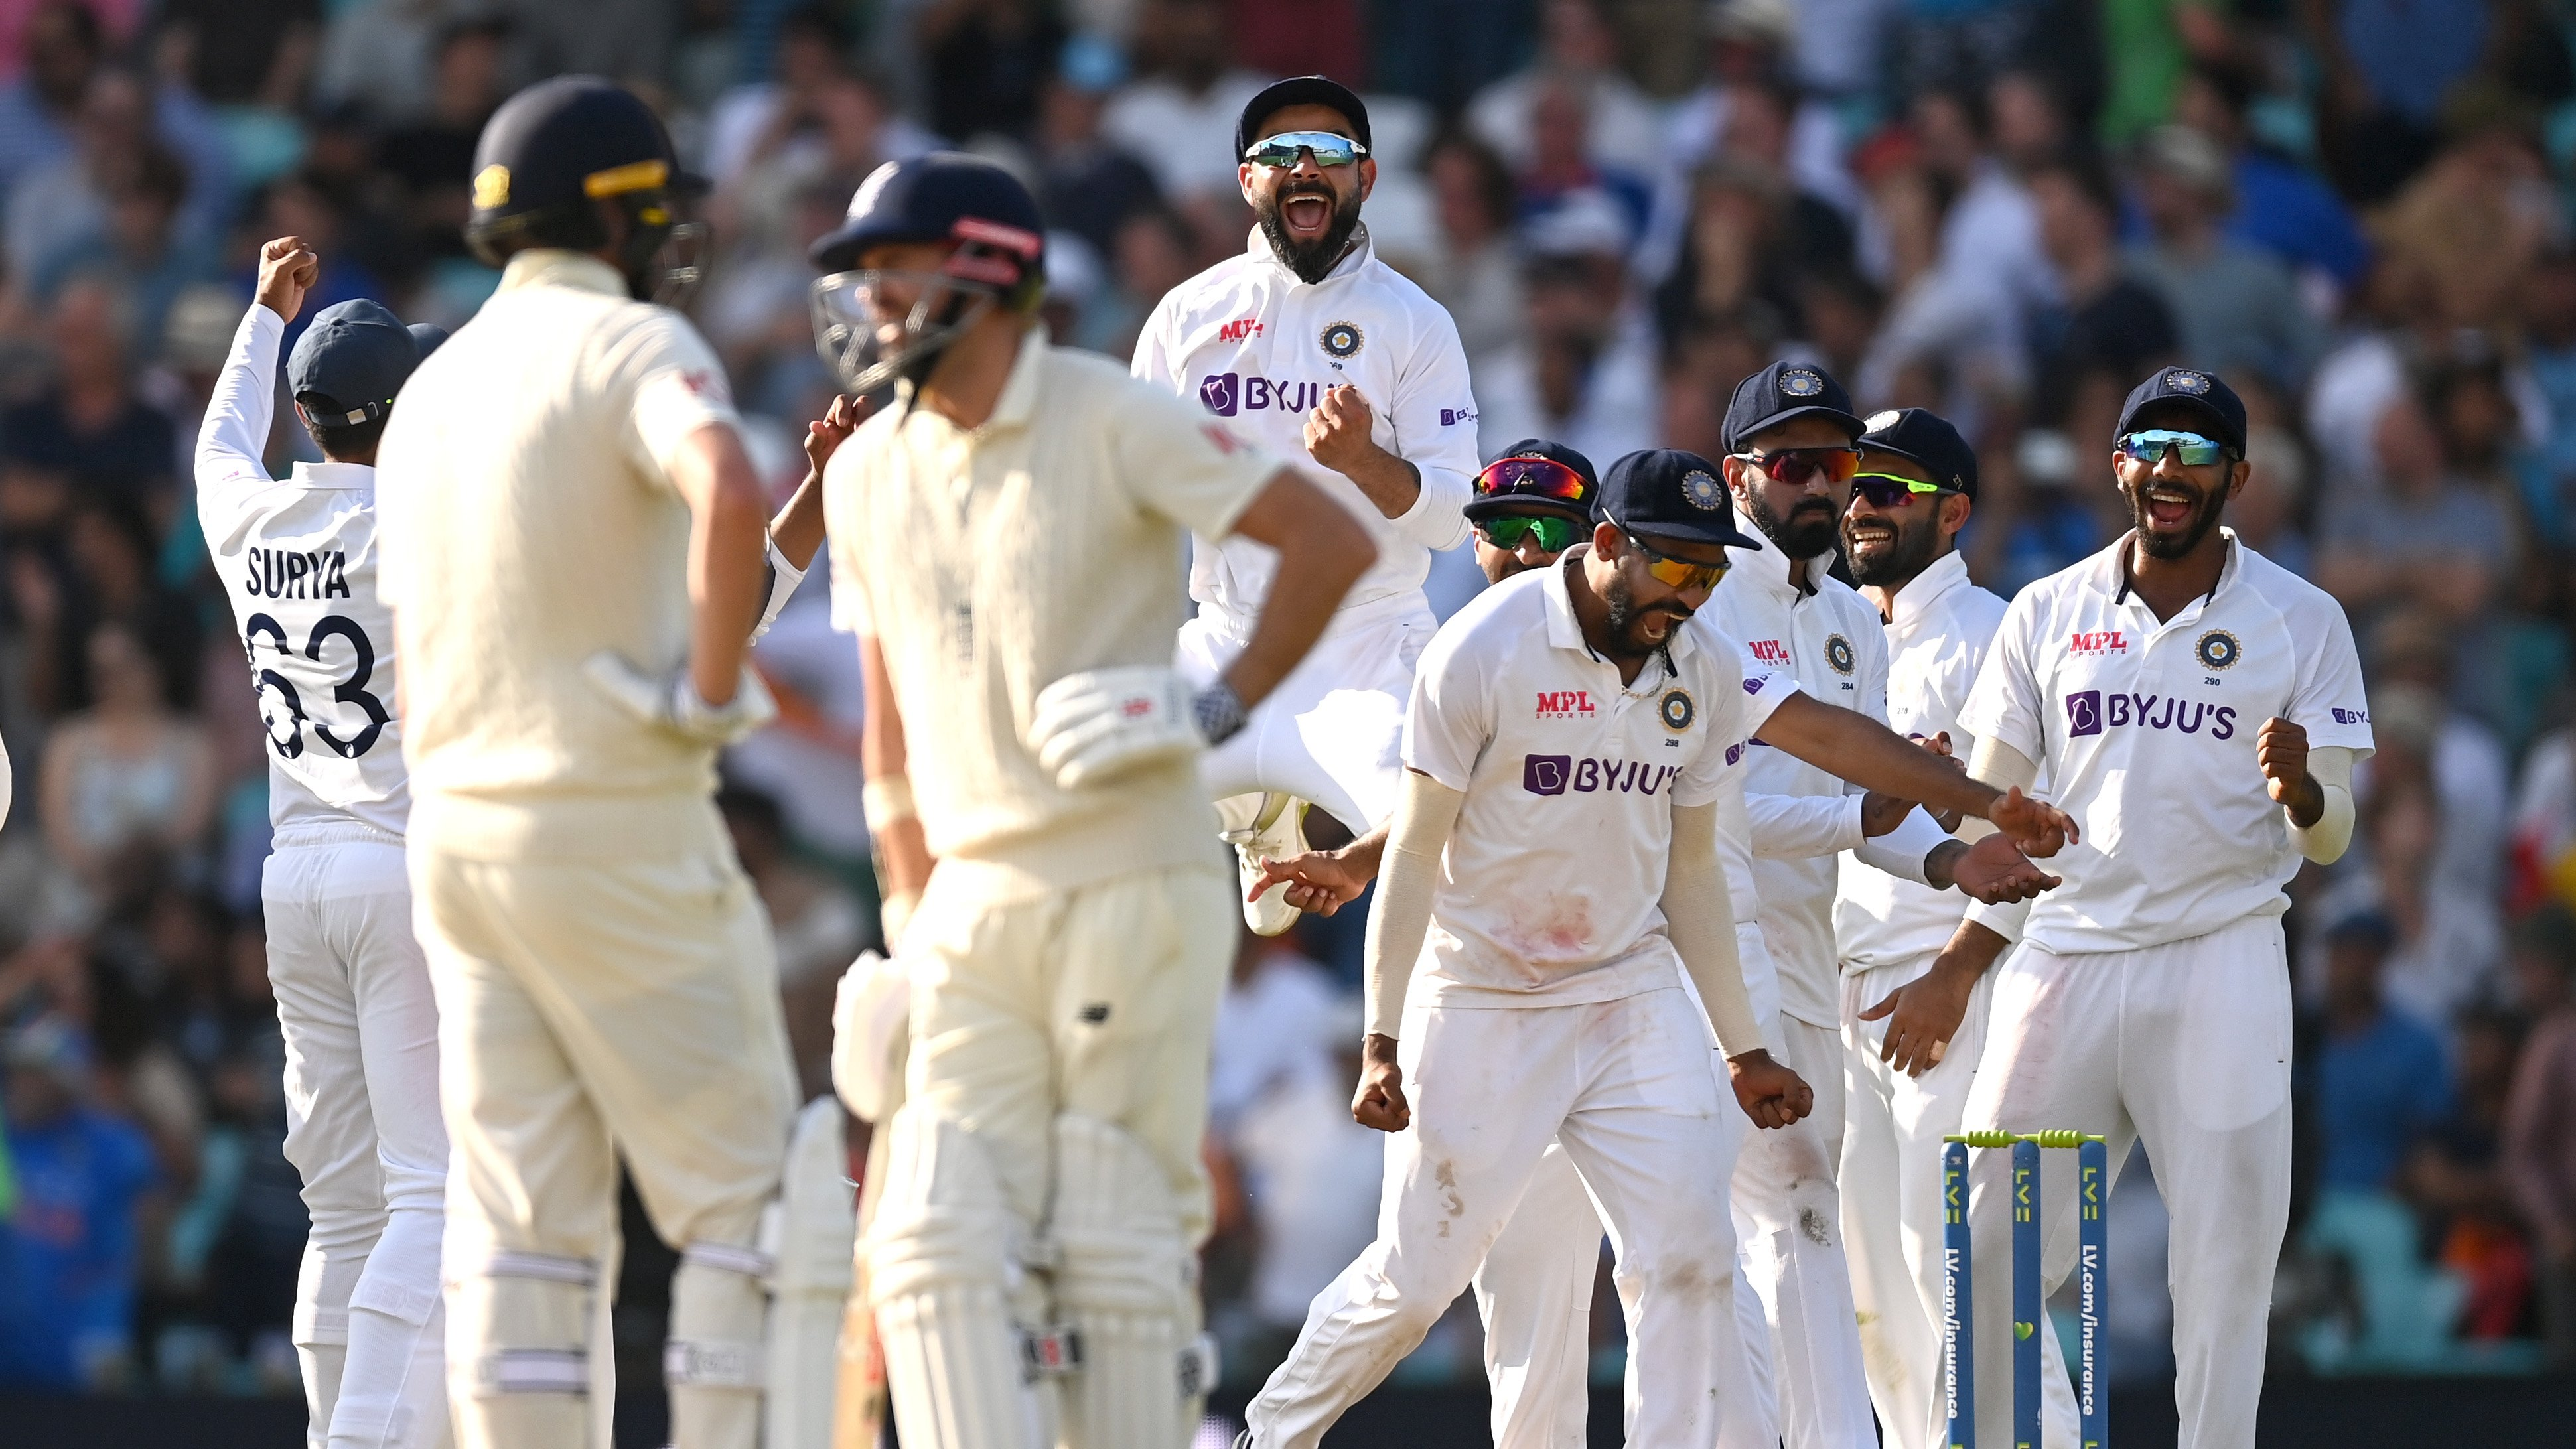 IND vs ENG: India's winning moment at Oval